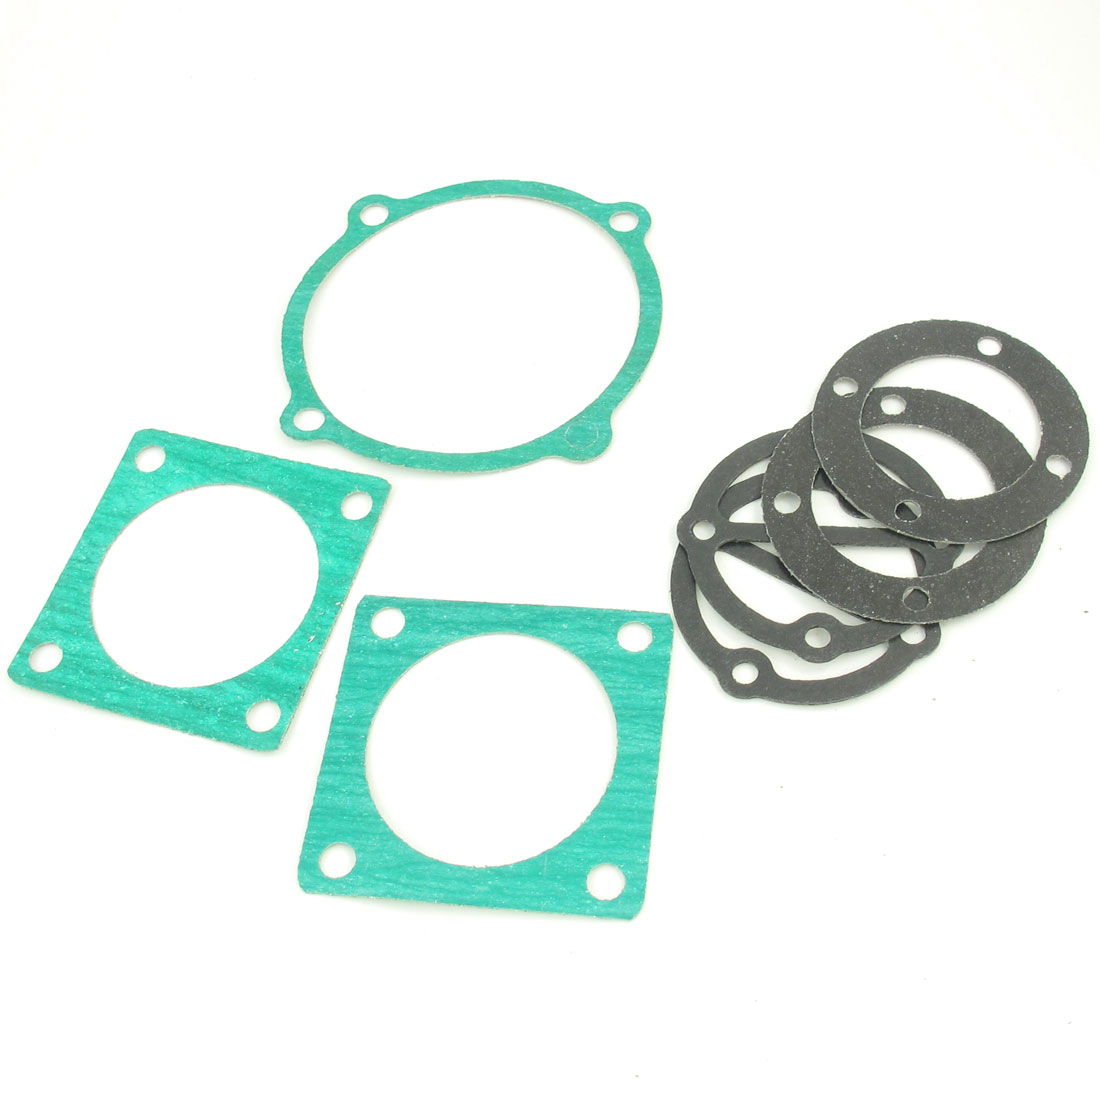 7 in 1 Air Compressor Cylinder Head Base Valve Plate Sealing Gaskets